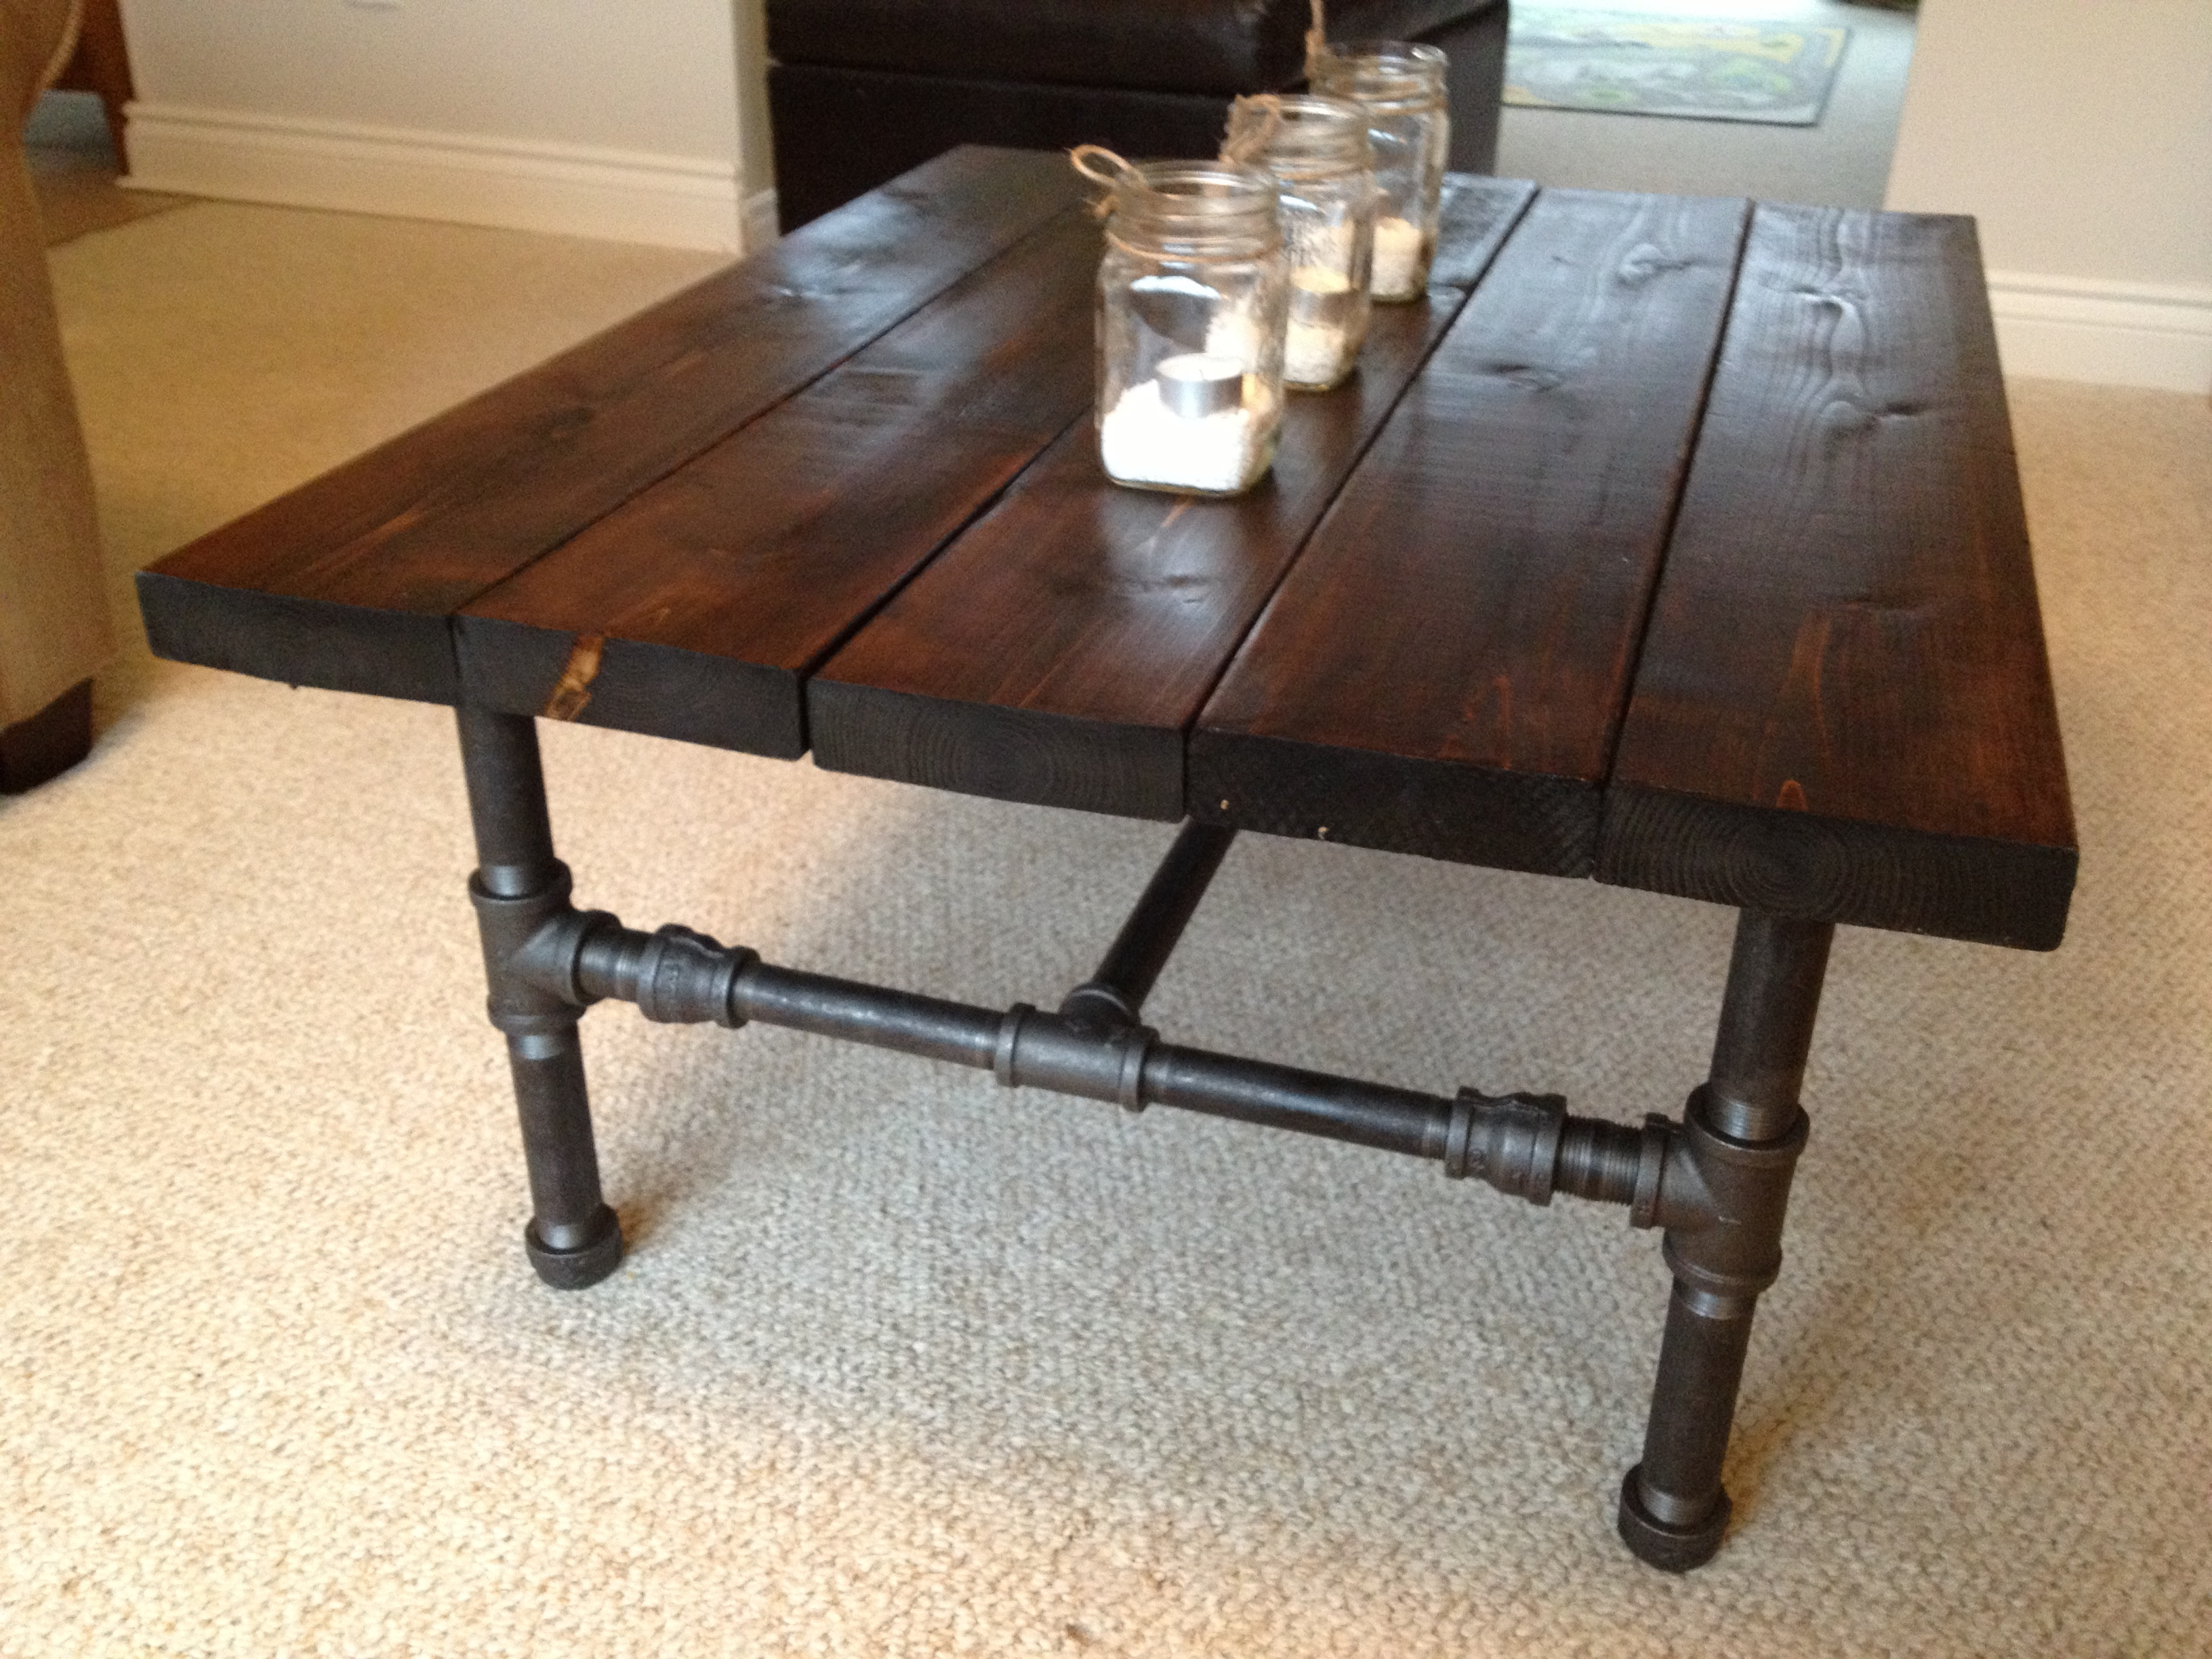 Best ideas about DIY Industrial Table . Save or Pin Industrial Curtain Rod DIY Now.